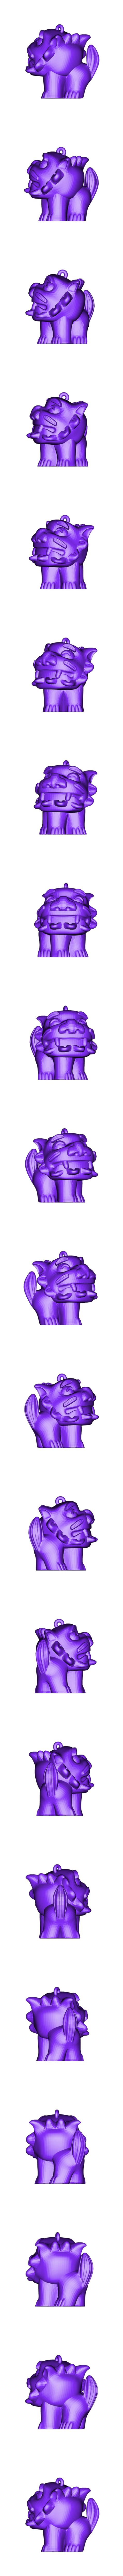 lion_g.stl Download free STL file chinese lion key ring • 3D printer design, 3DP_PARK